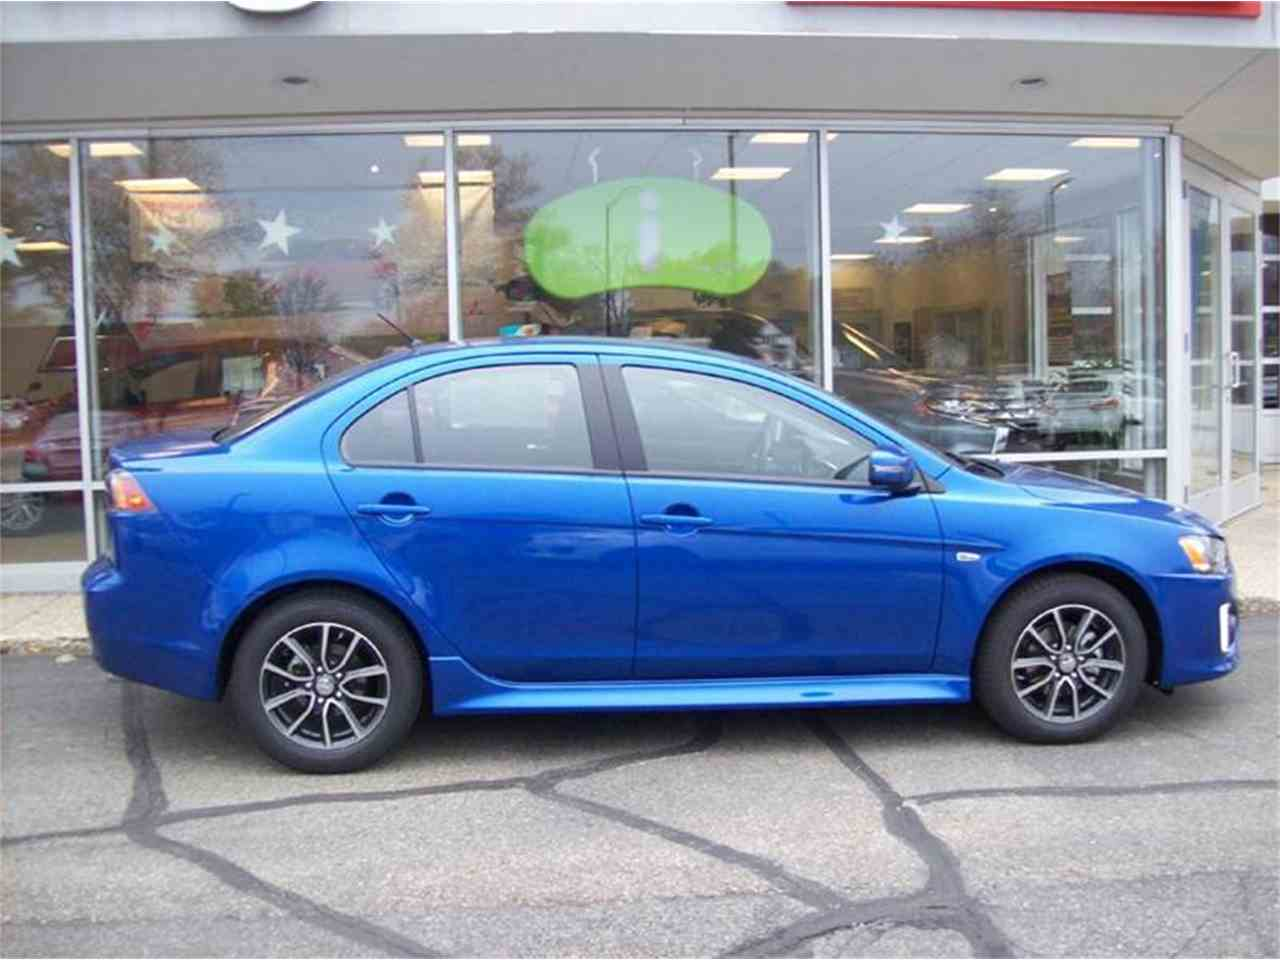 Large Picture of '17 Mitsubishi Lancer located in Holland Michigan - $17,489.00 Offered by Verhage Mitsubishi - JSPQ